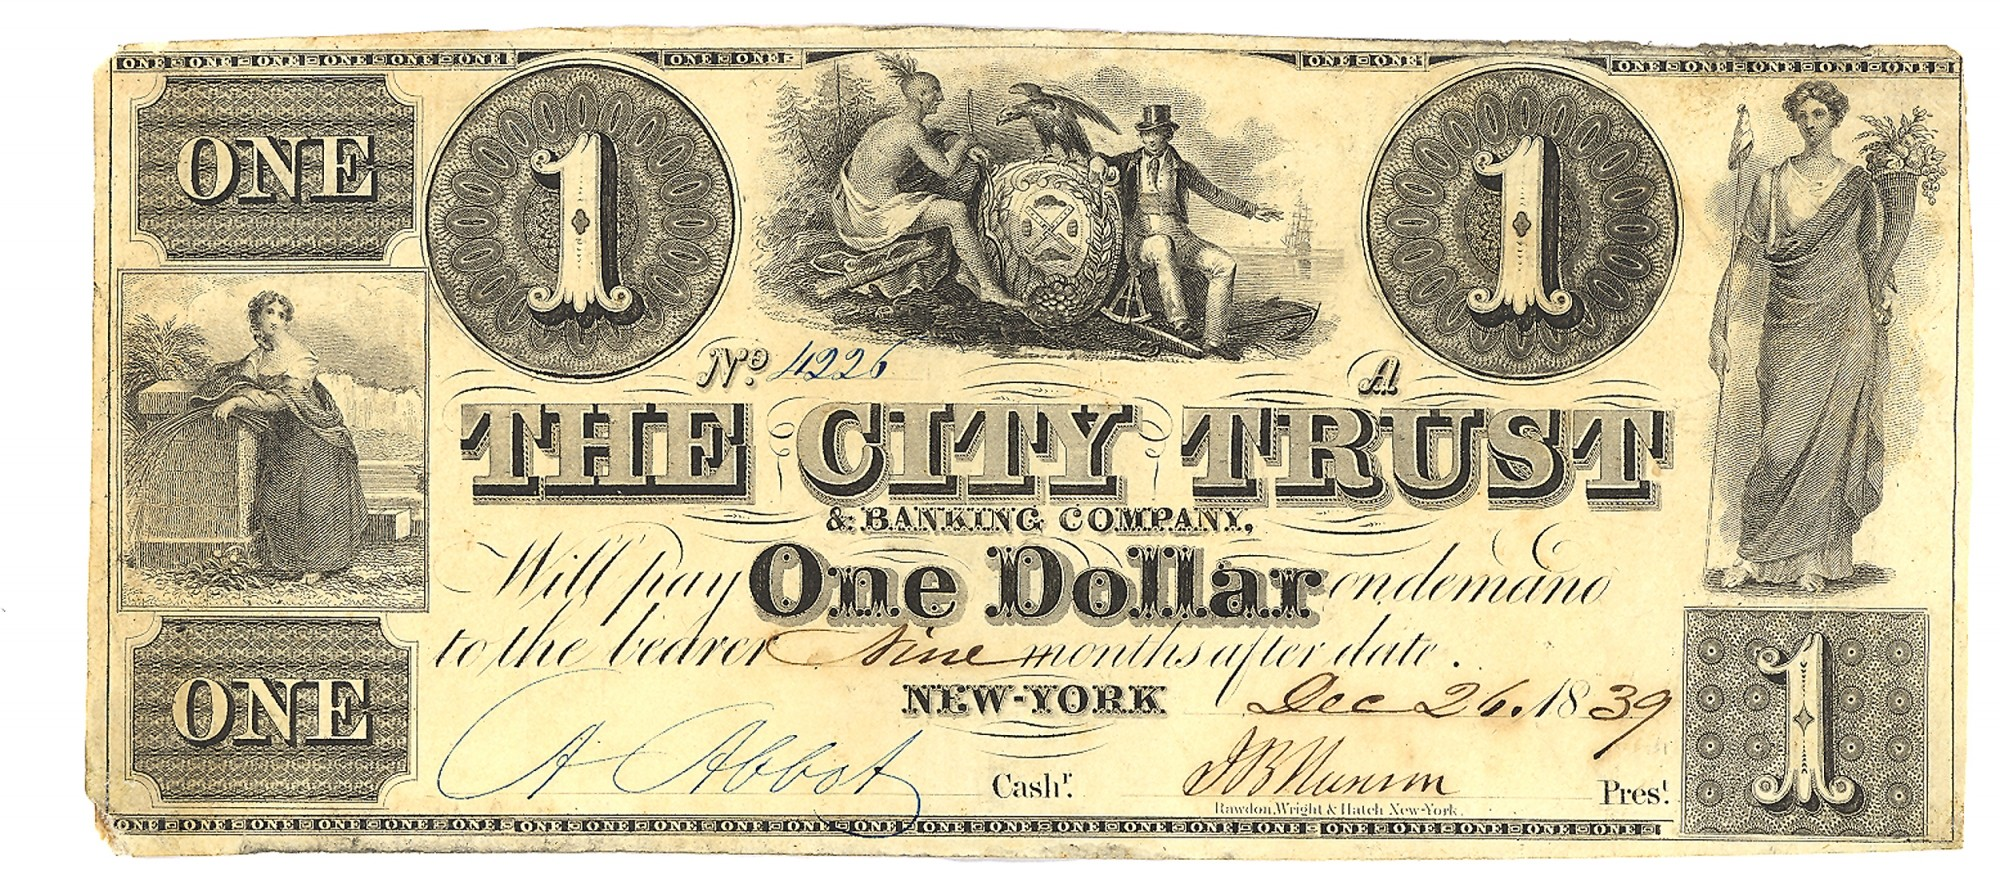 THE CITY TRUST AND BANKING COMPANY, NEW YORK CITY, NEW YORK $1 NOTE